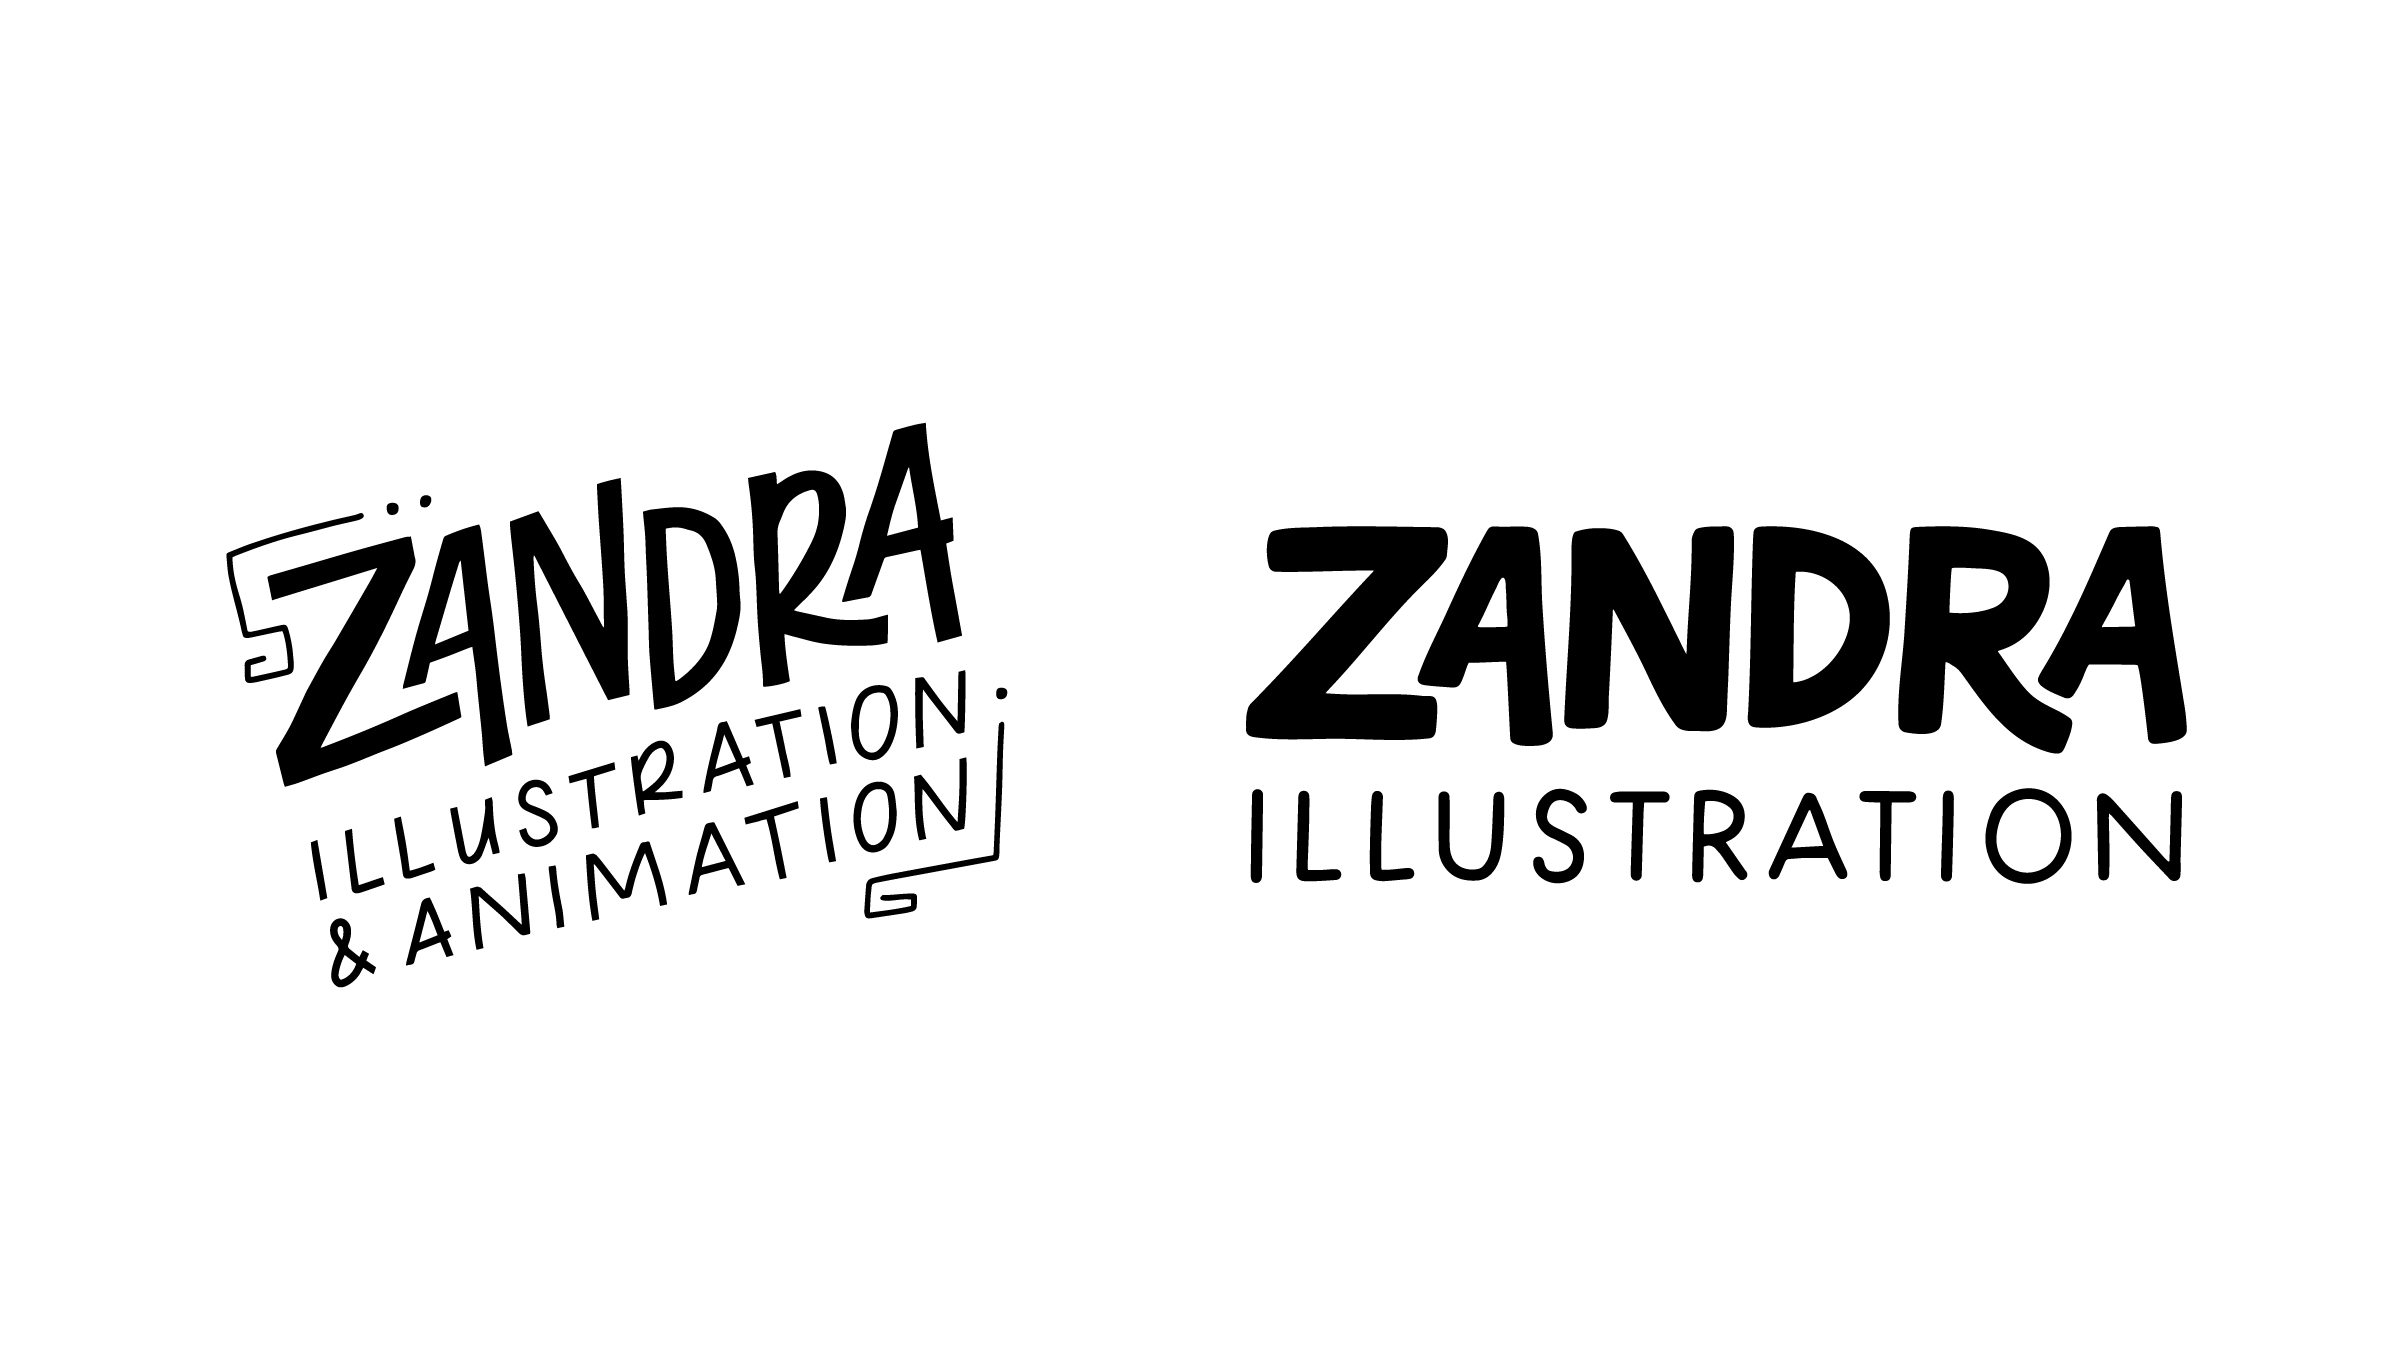 Zandra Illustration Rebrand - Old and New Logos